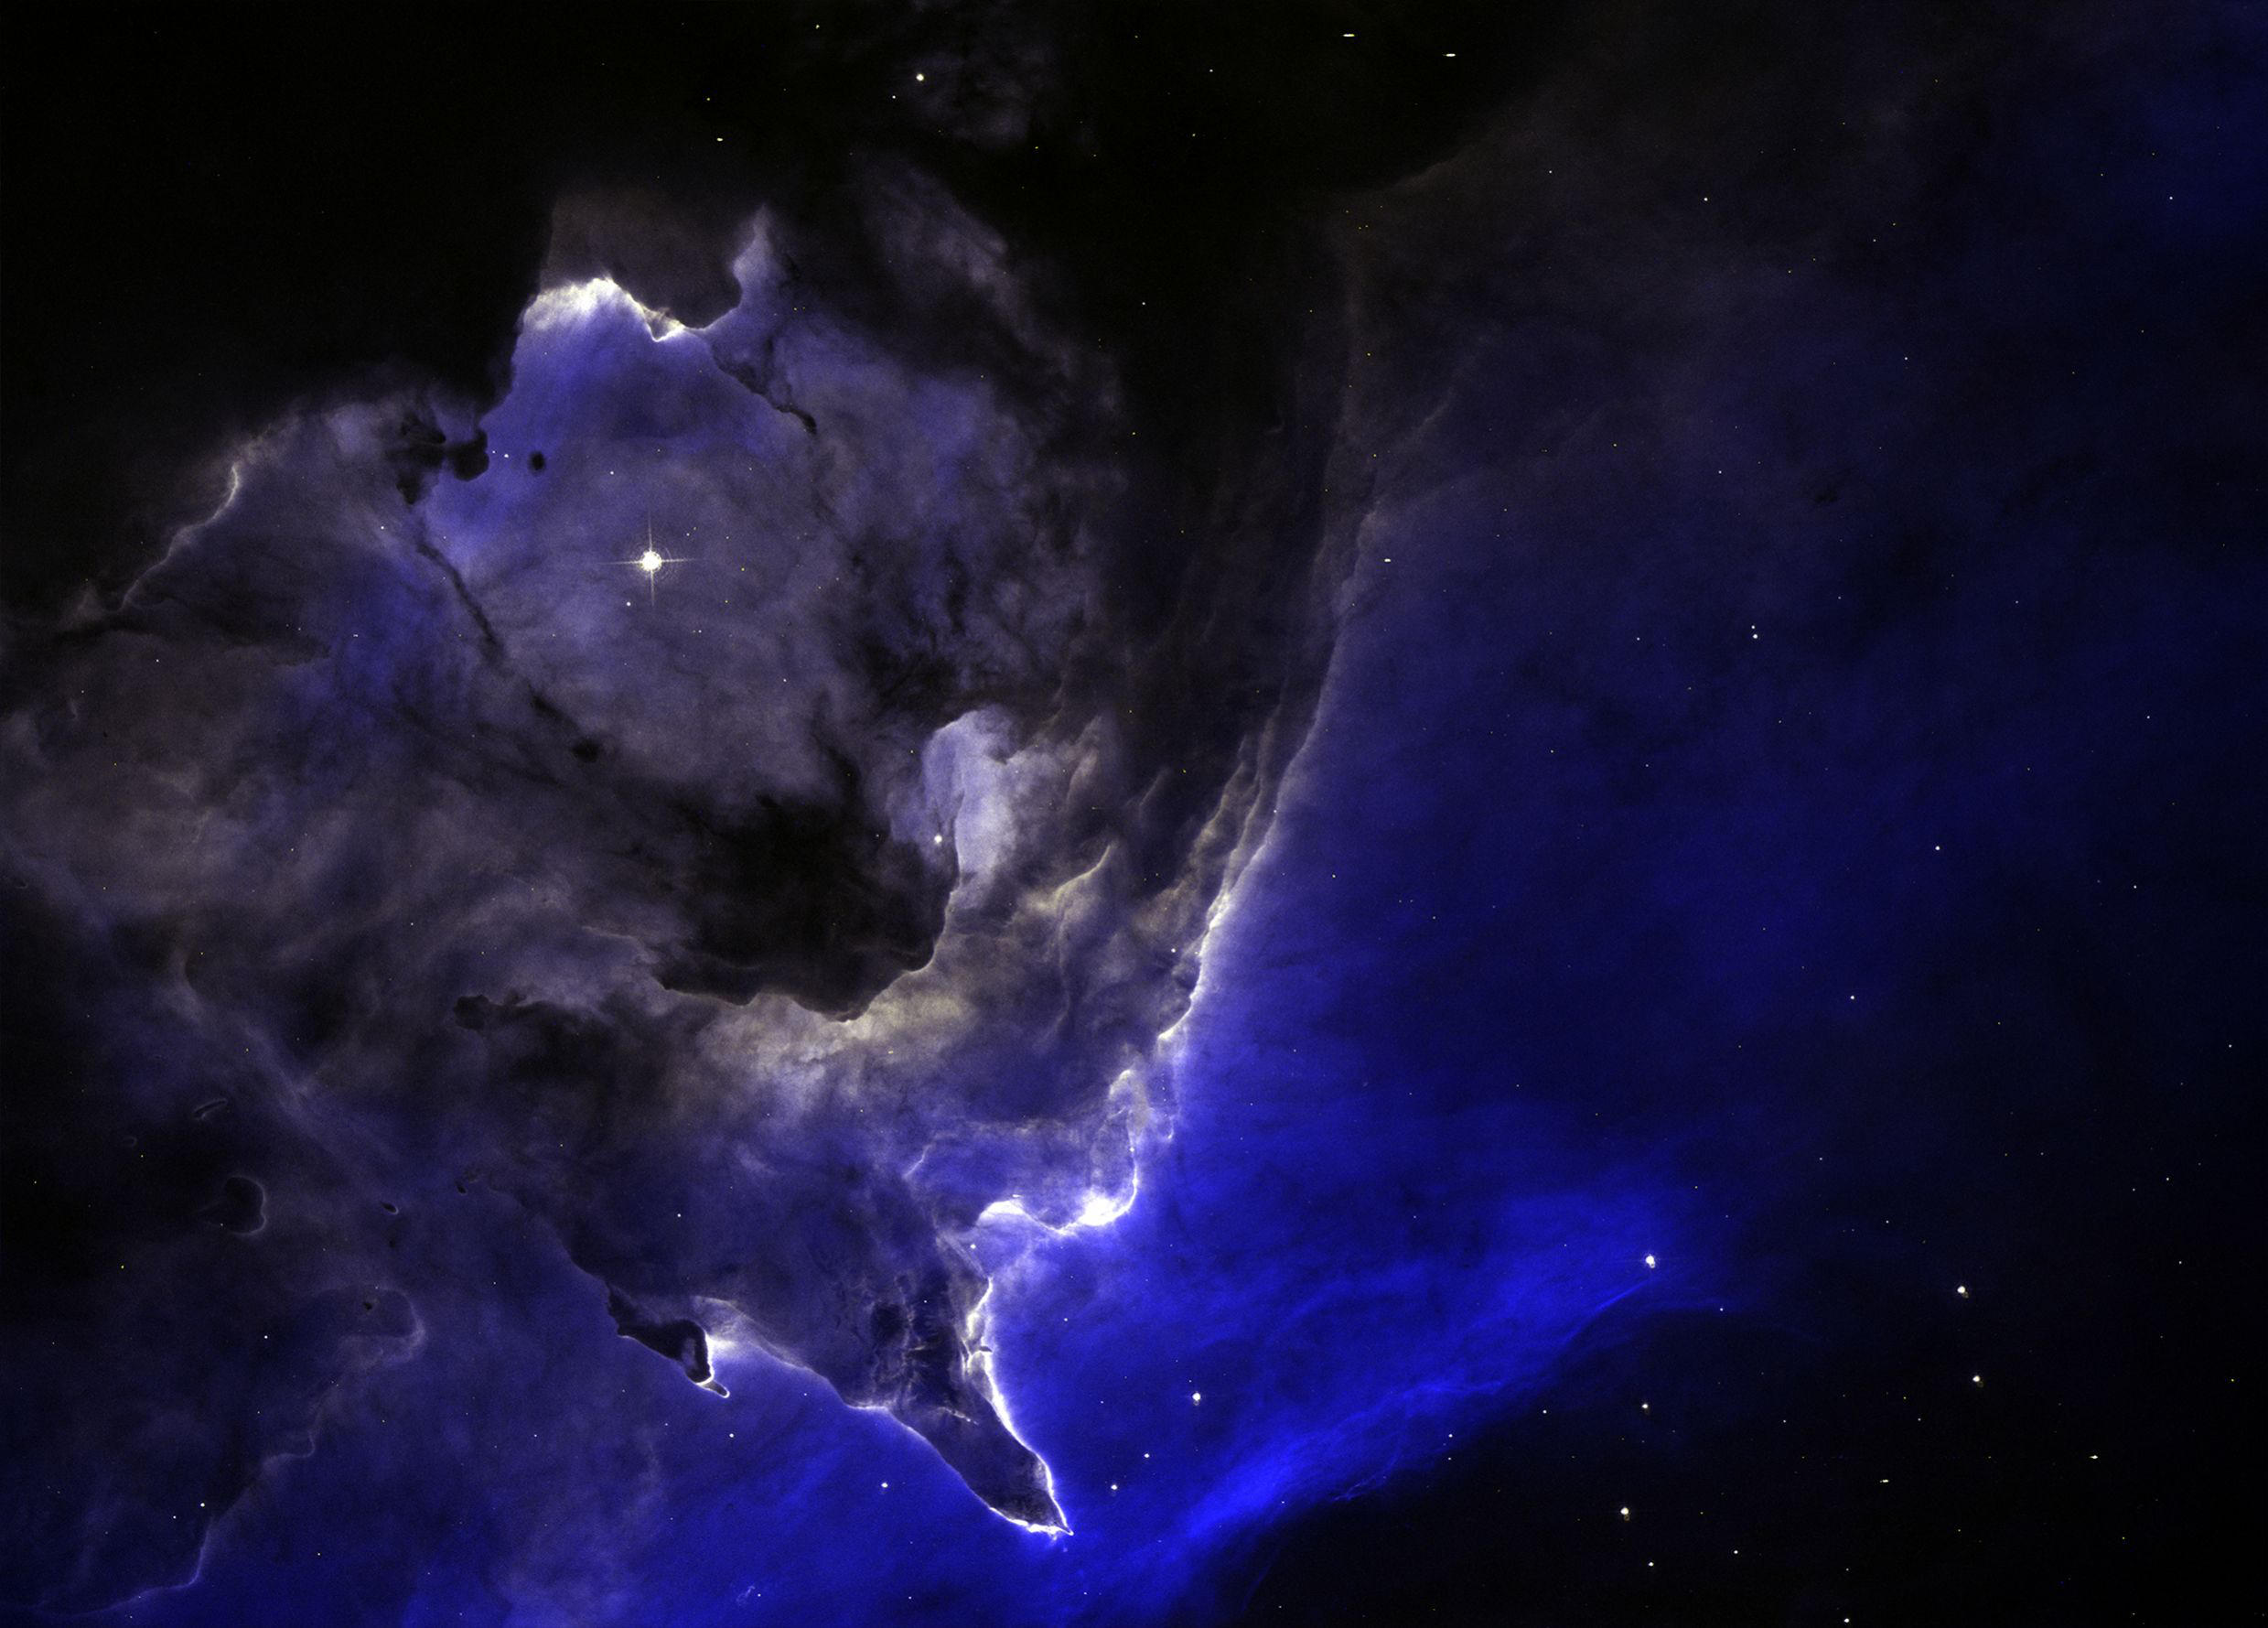 A larger section of NGC6357 [Real Space] by omniomi